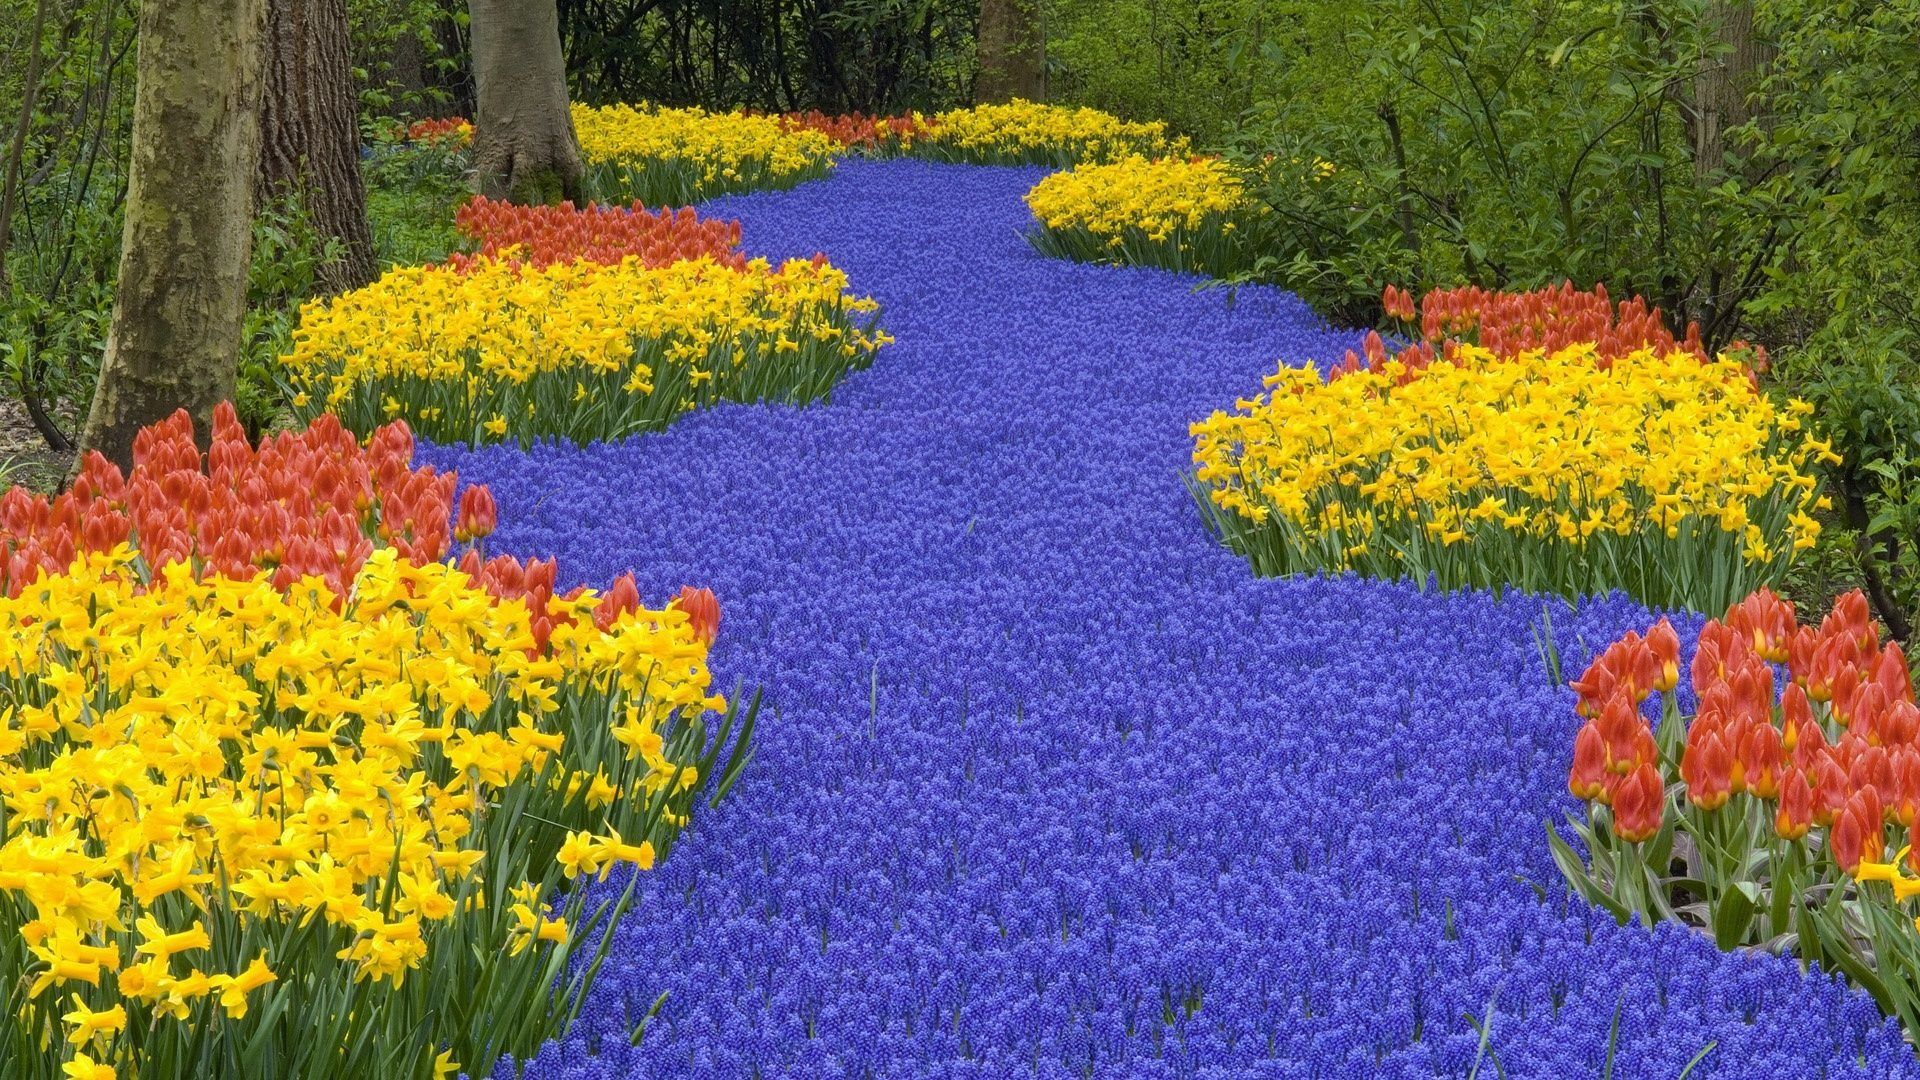 Amazing Flower Garden - WallDevil